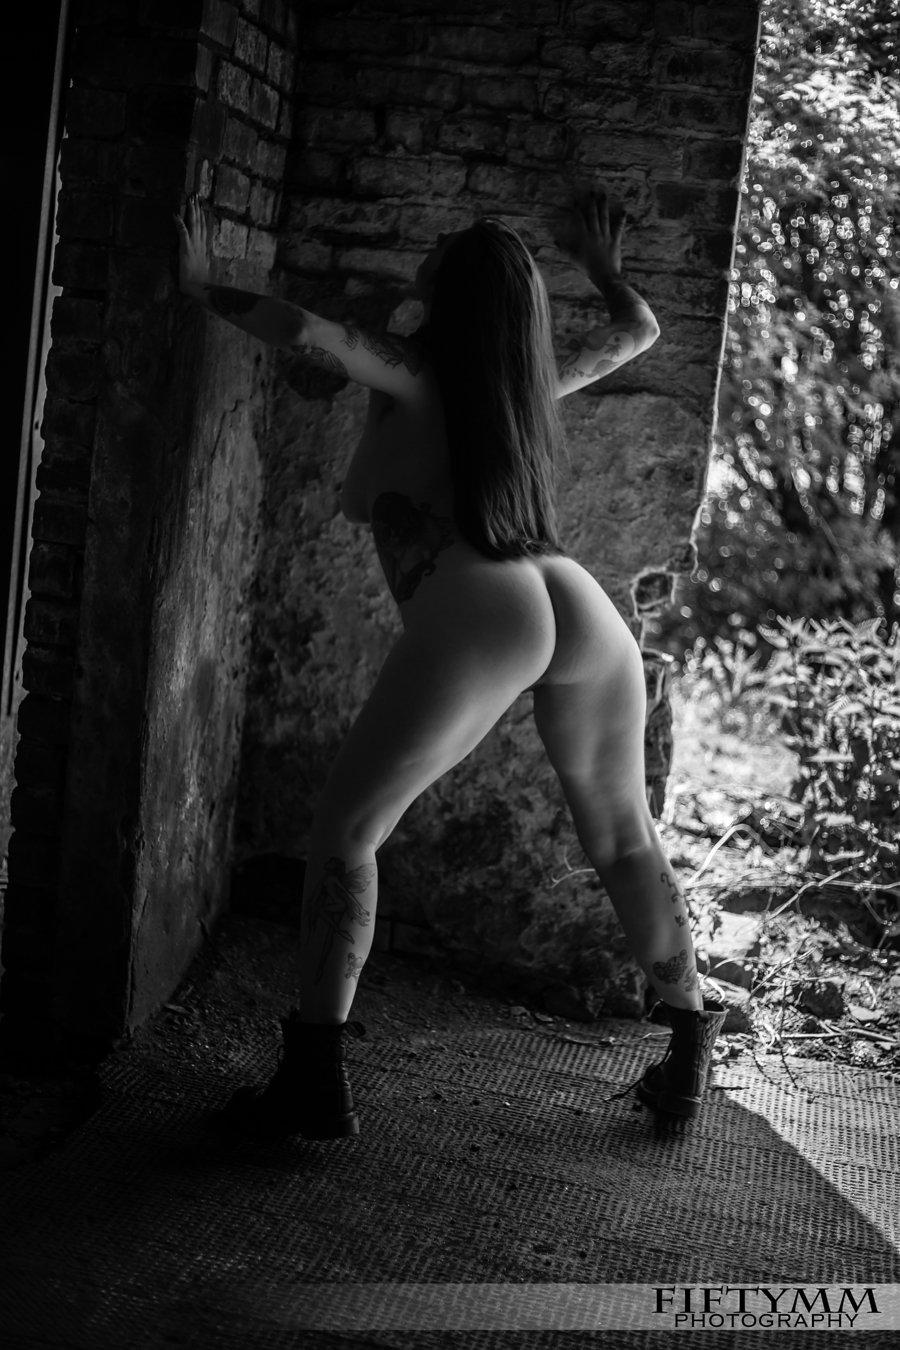 Booty queen / Photography by FIFTYMM Photography, Model Rogue / Uploaded 19th August 2018 @ 06:36 PM